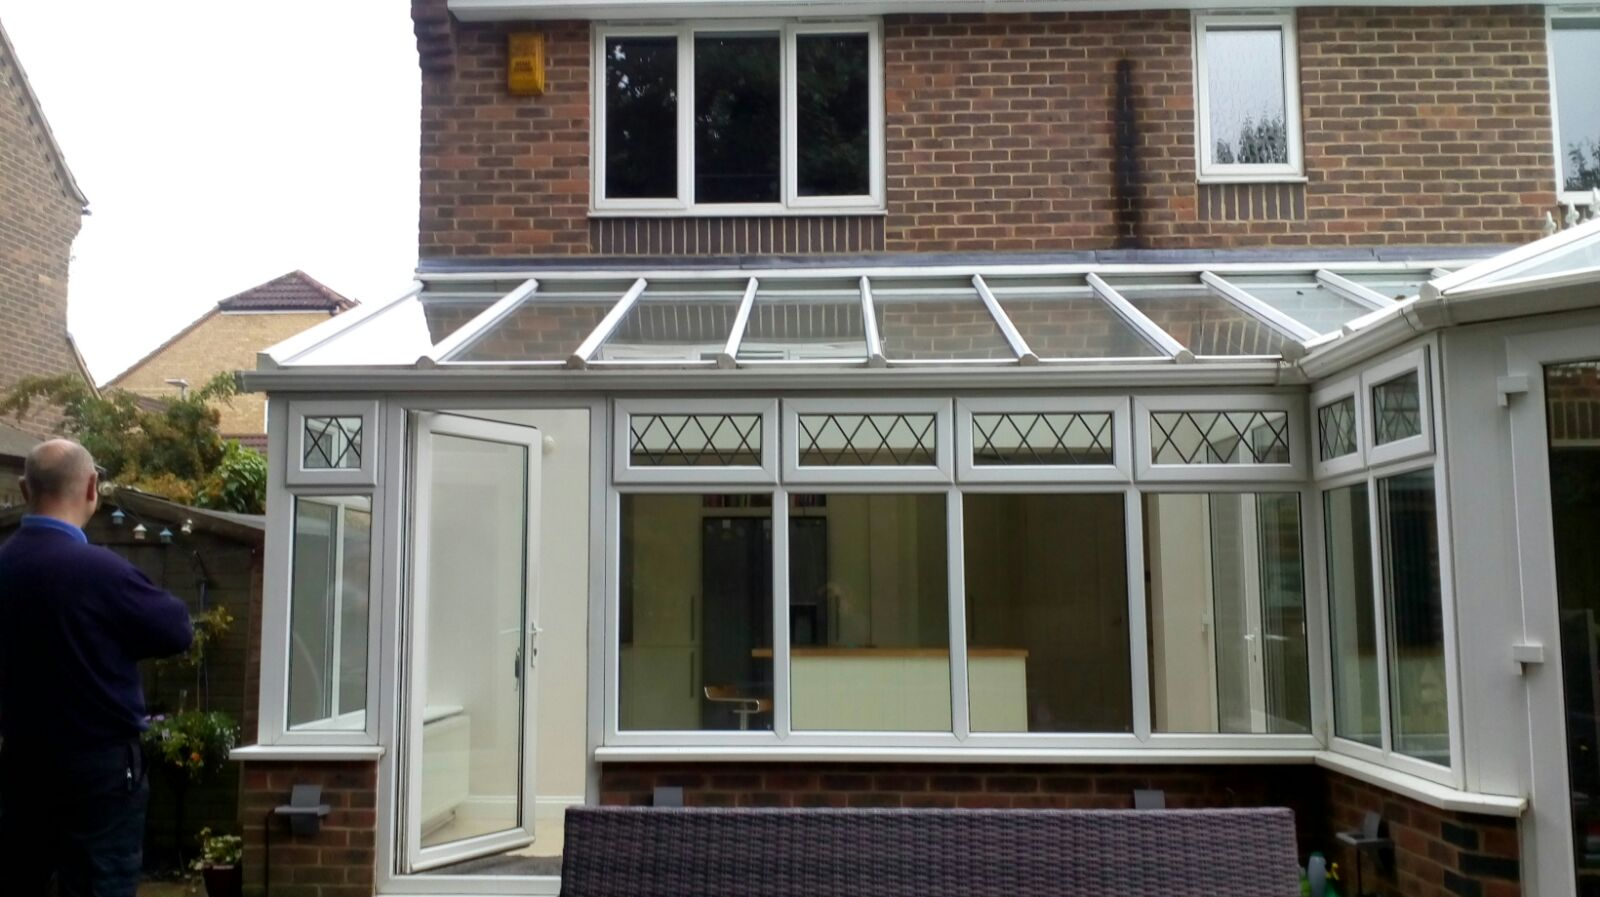 CONSERVATORY GLAZED UNIT REPLACEMENT